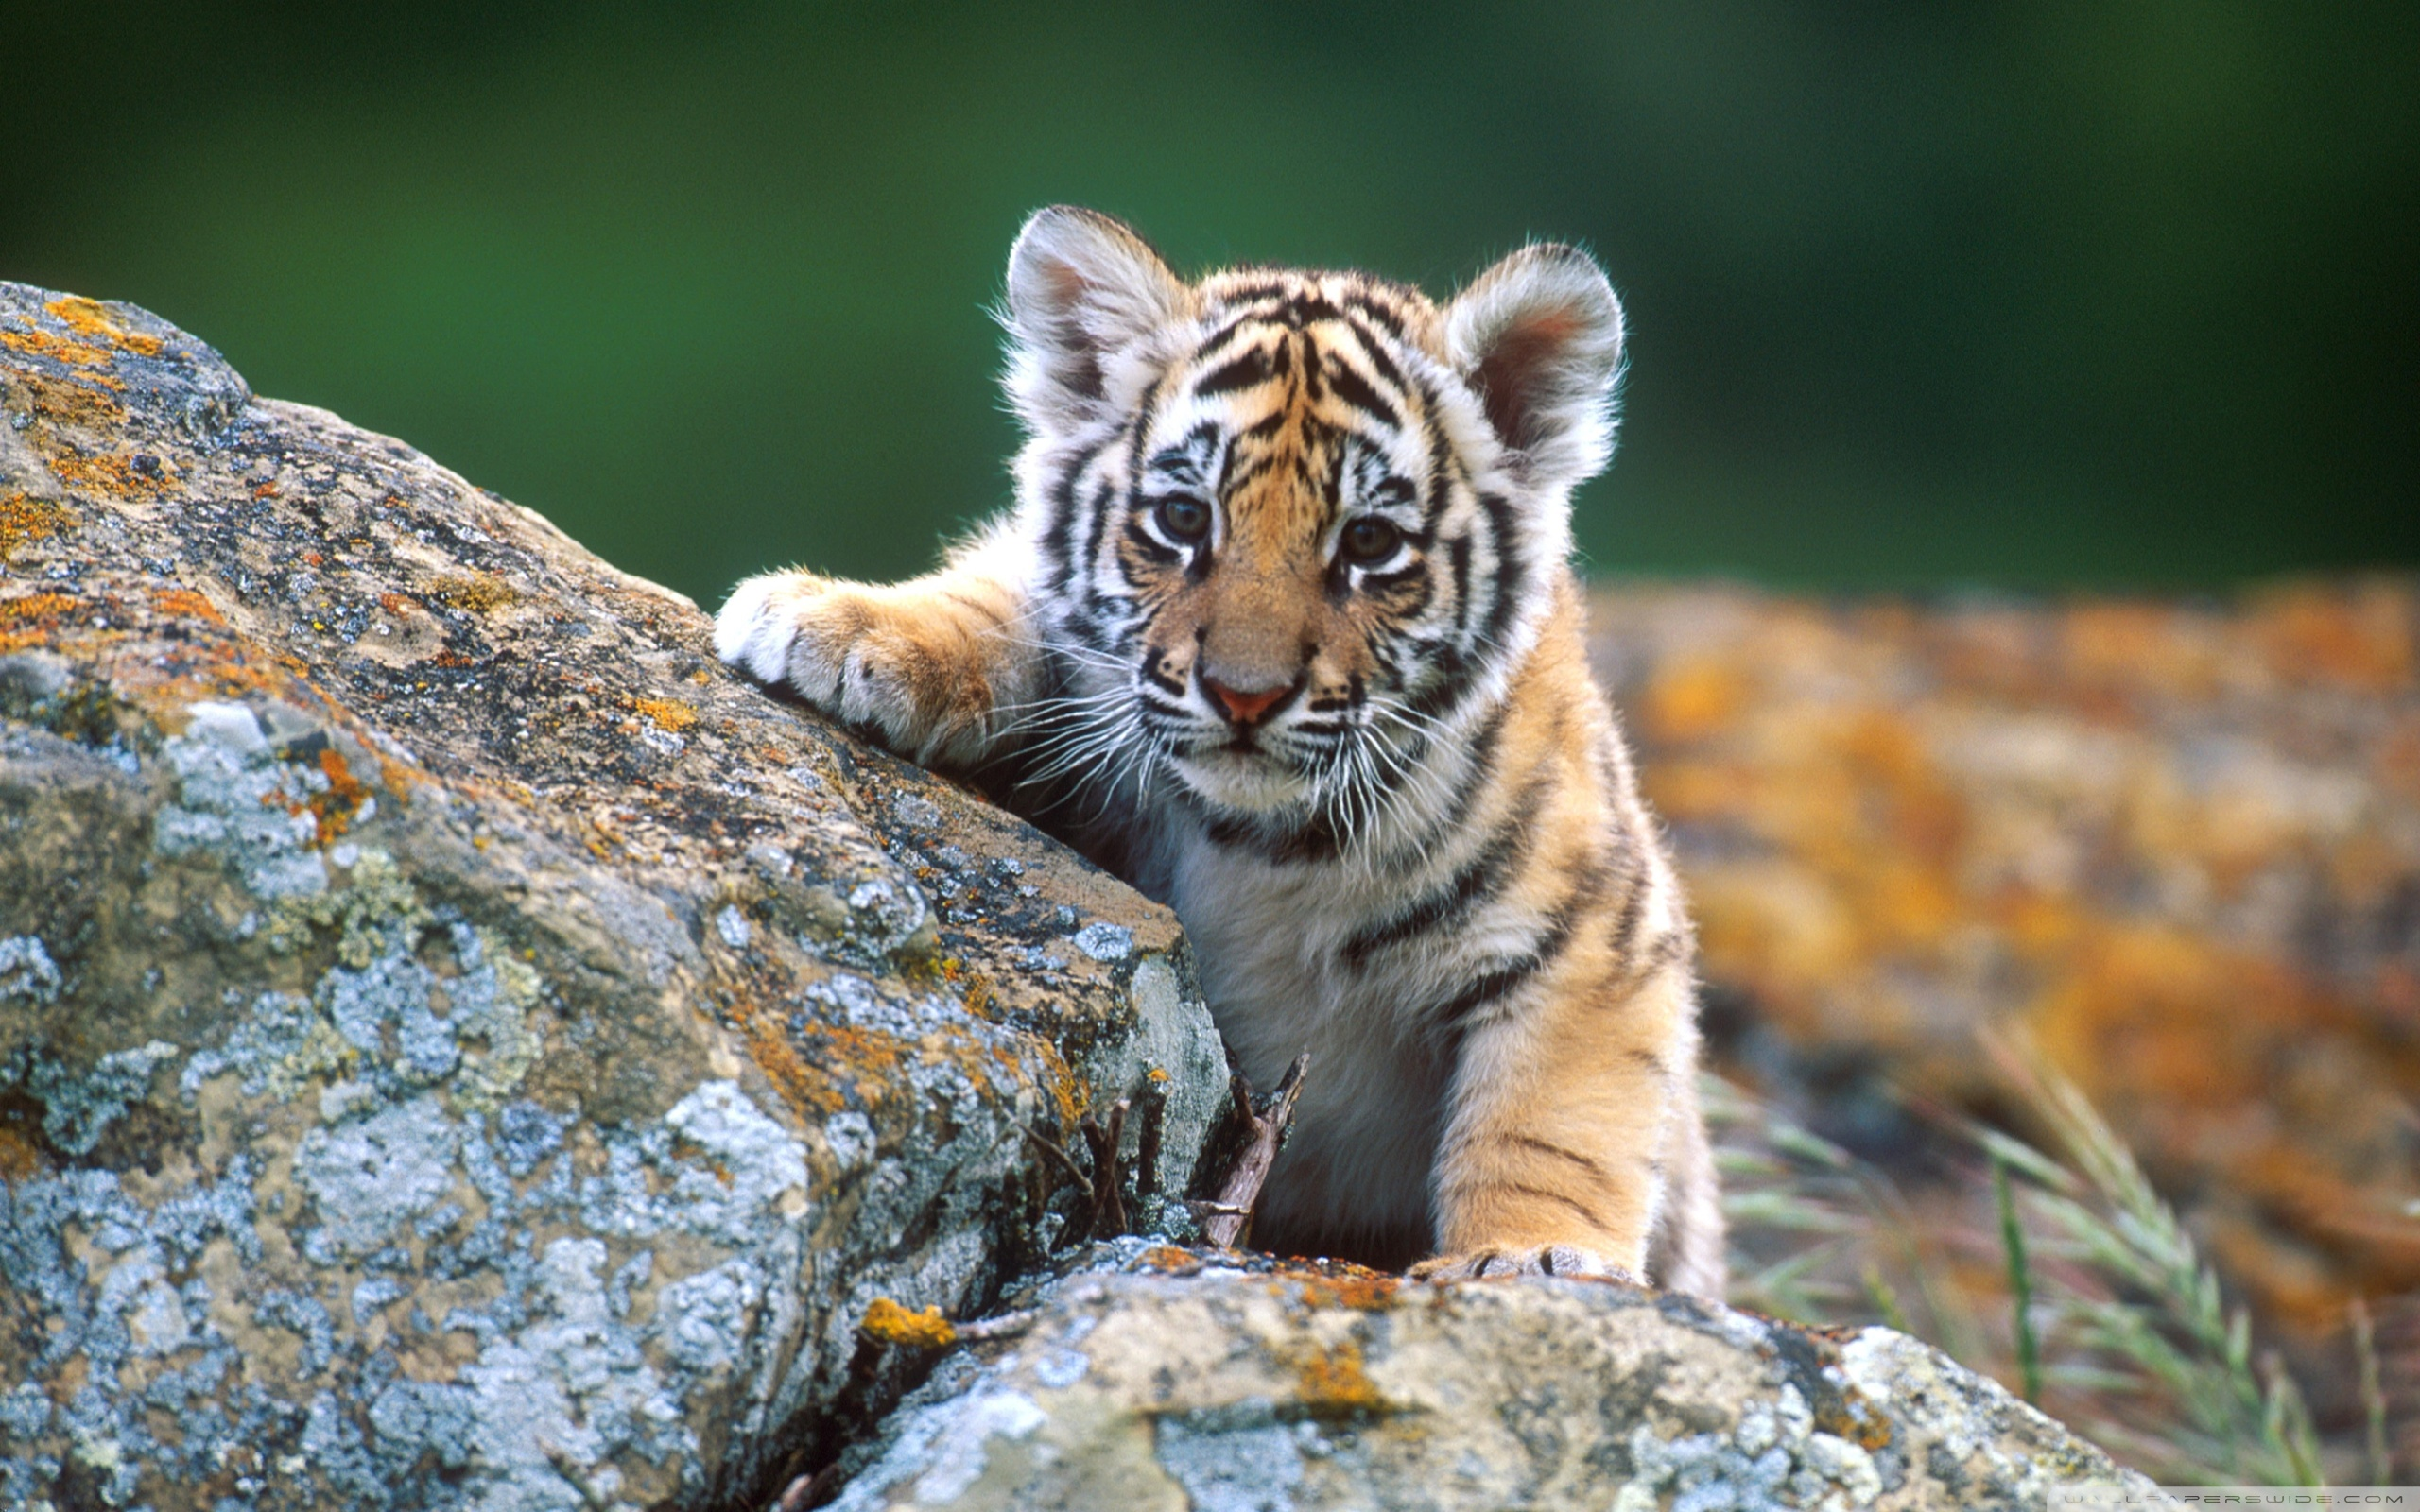 Cub Backgrounds